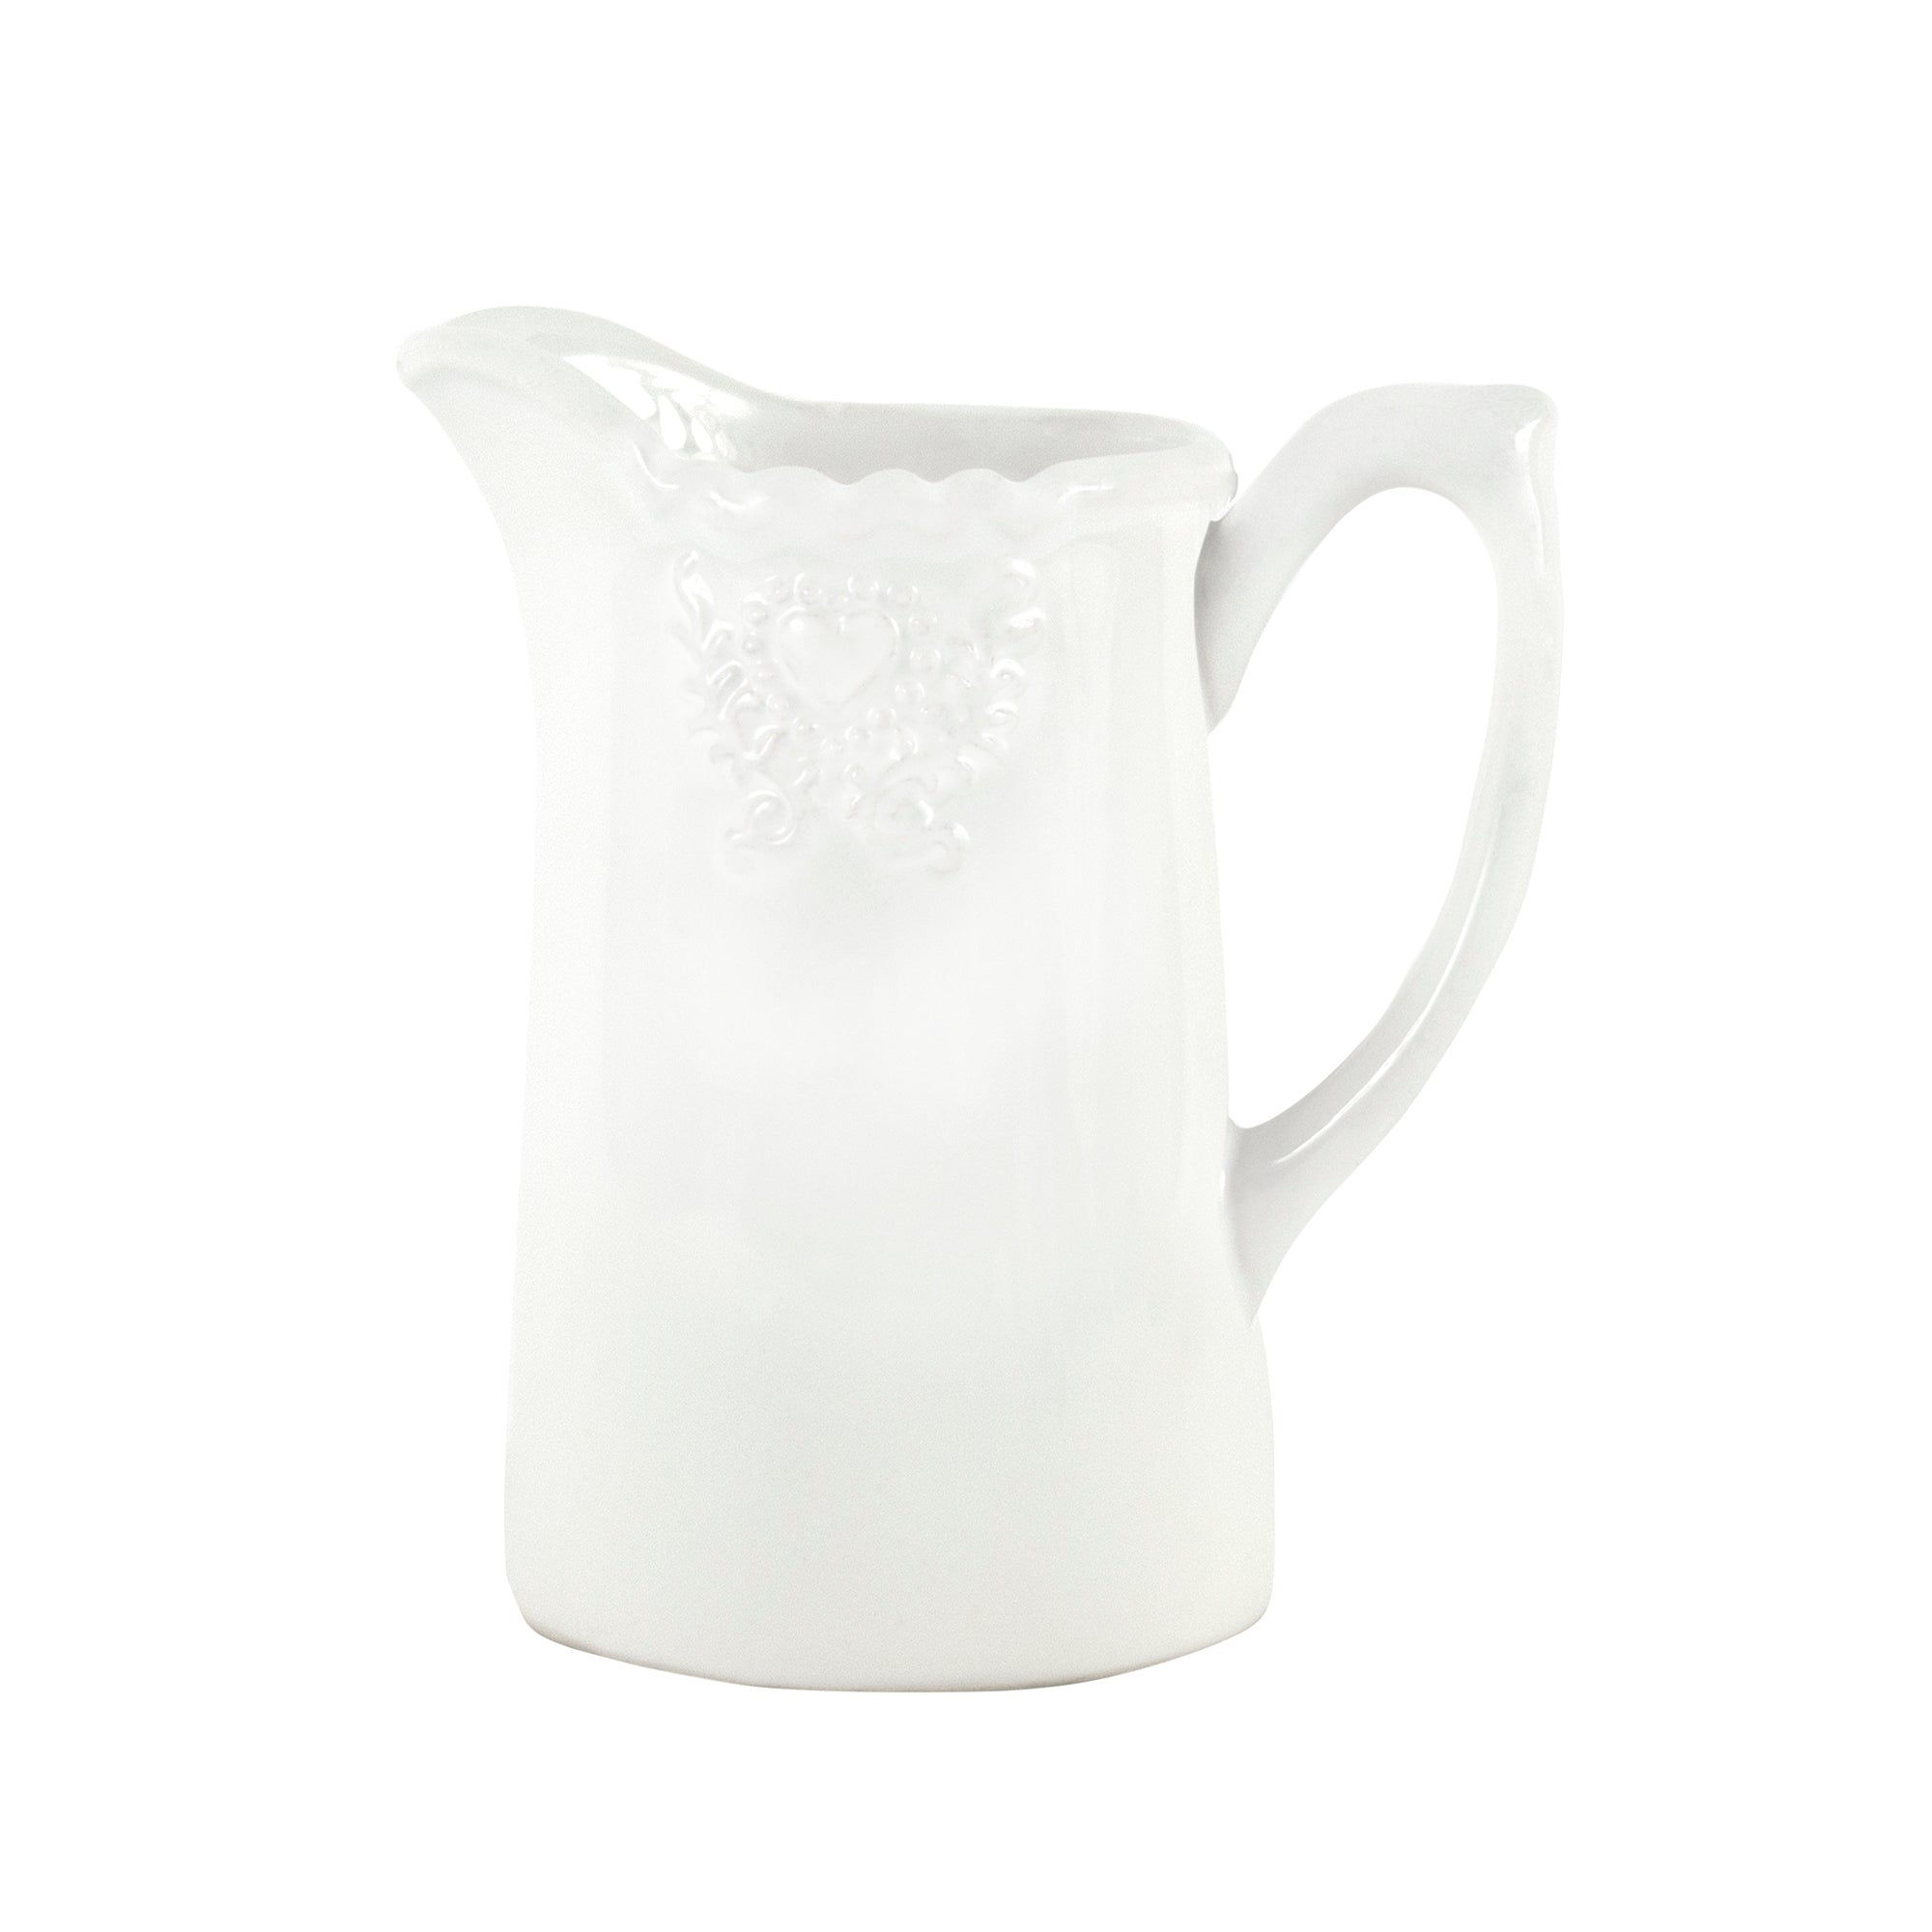 Maison Chic Collection Large Jug